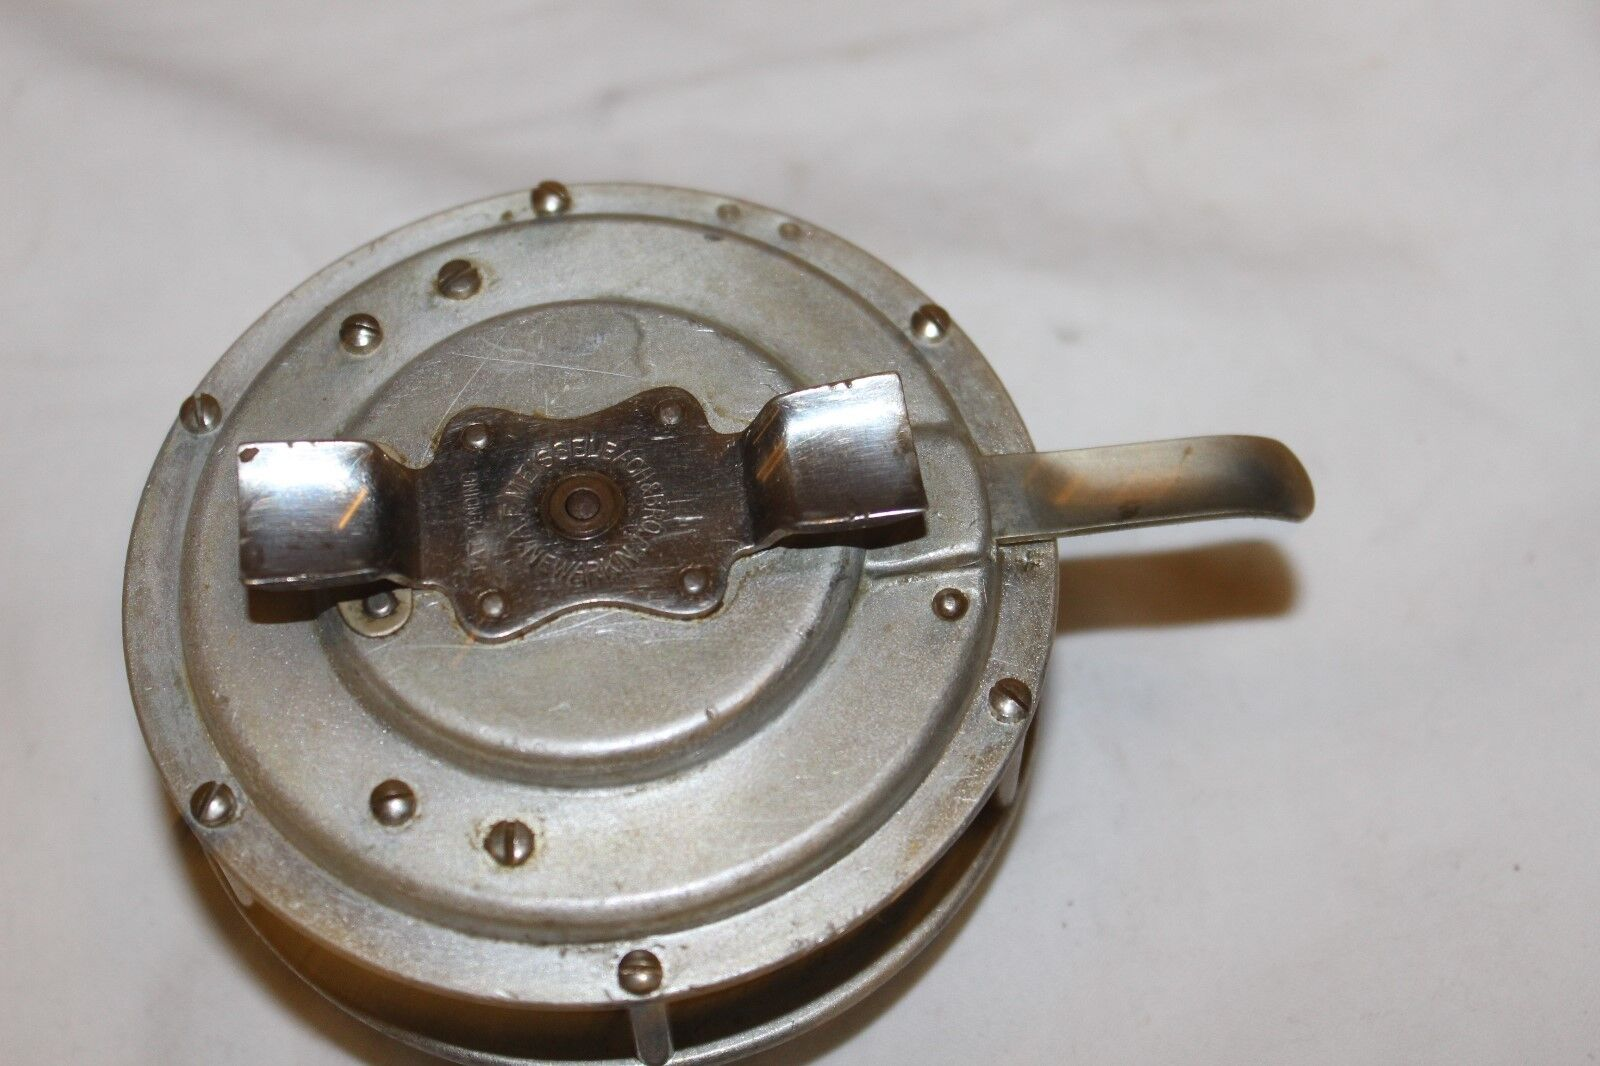 MEISSELBACH-AUTOMATIC FLY REEL- USA- MADE IN USA- REEL- Nr-707 74a955